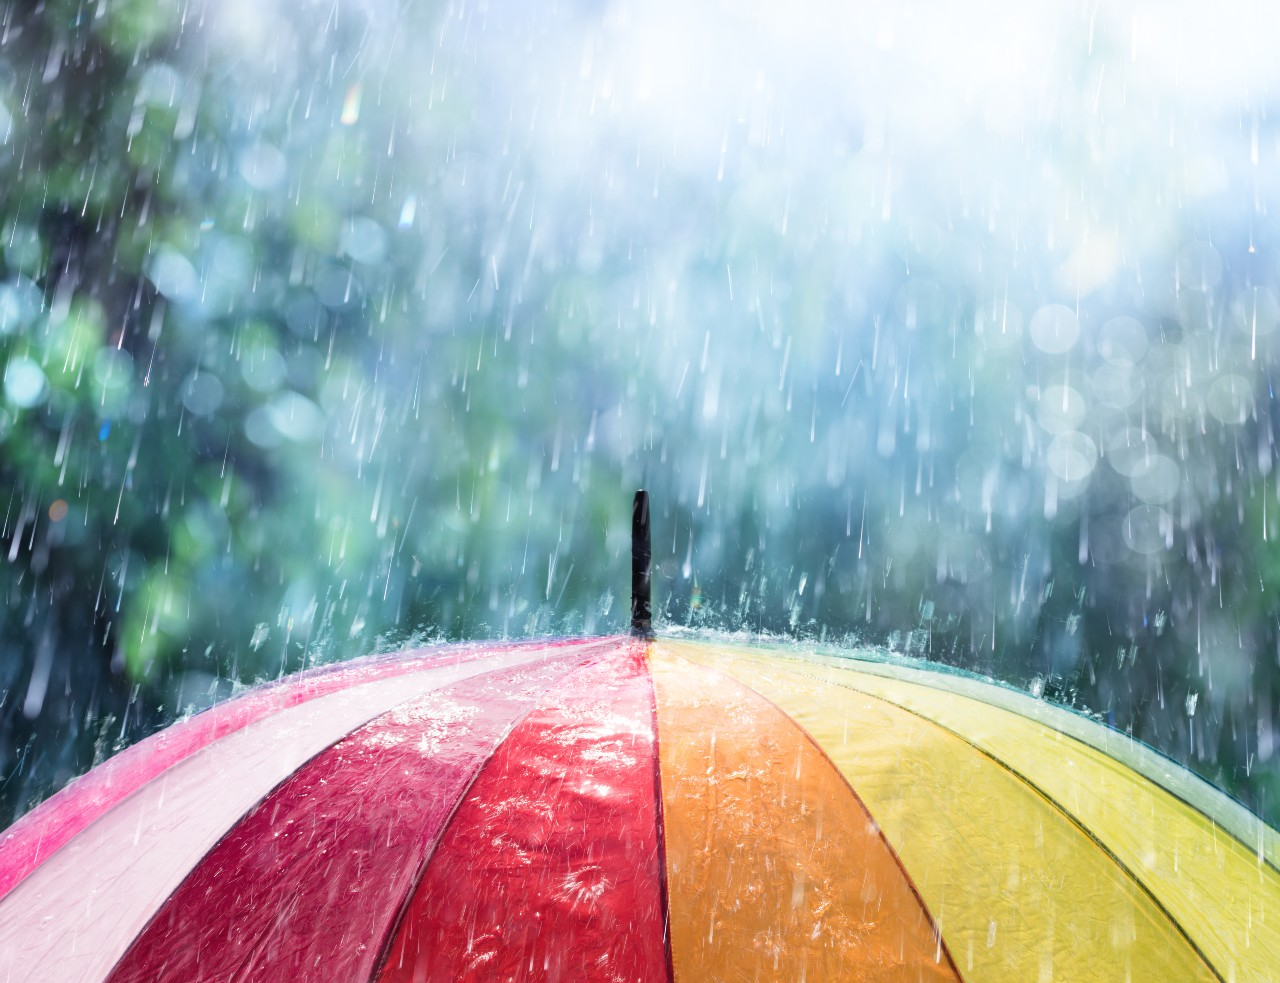 Colorful umbrella protects from a rainstorm like insurance policies protect clients.